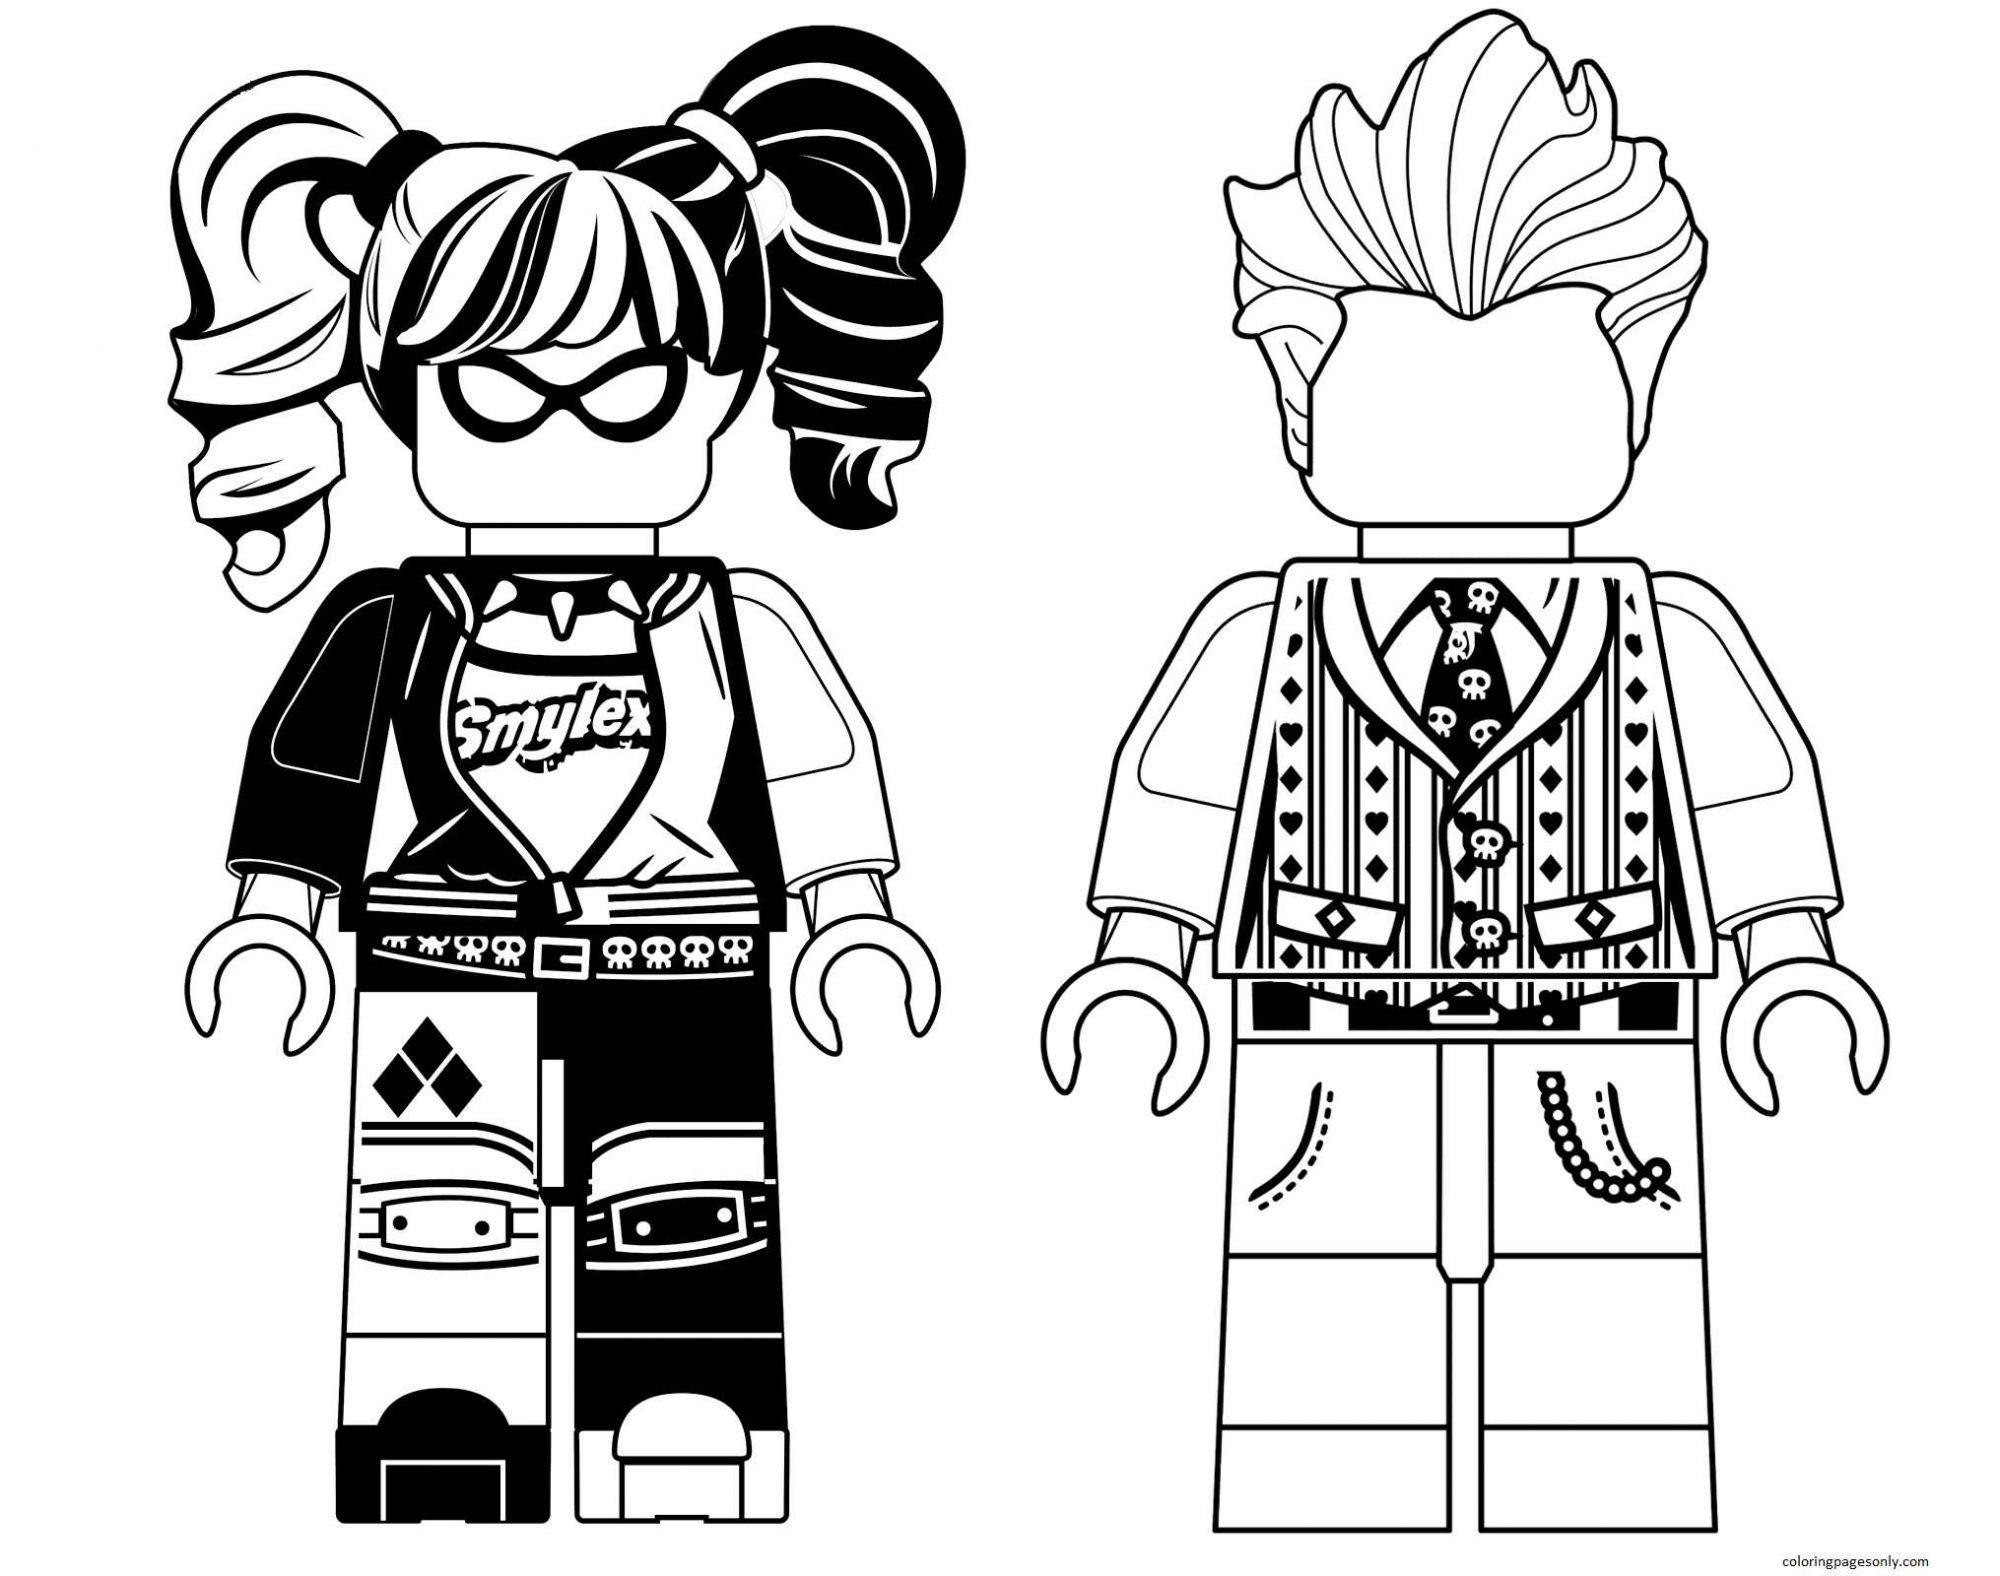 Harley Quinn and Joker Coloring Page